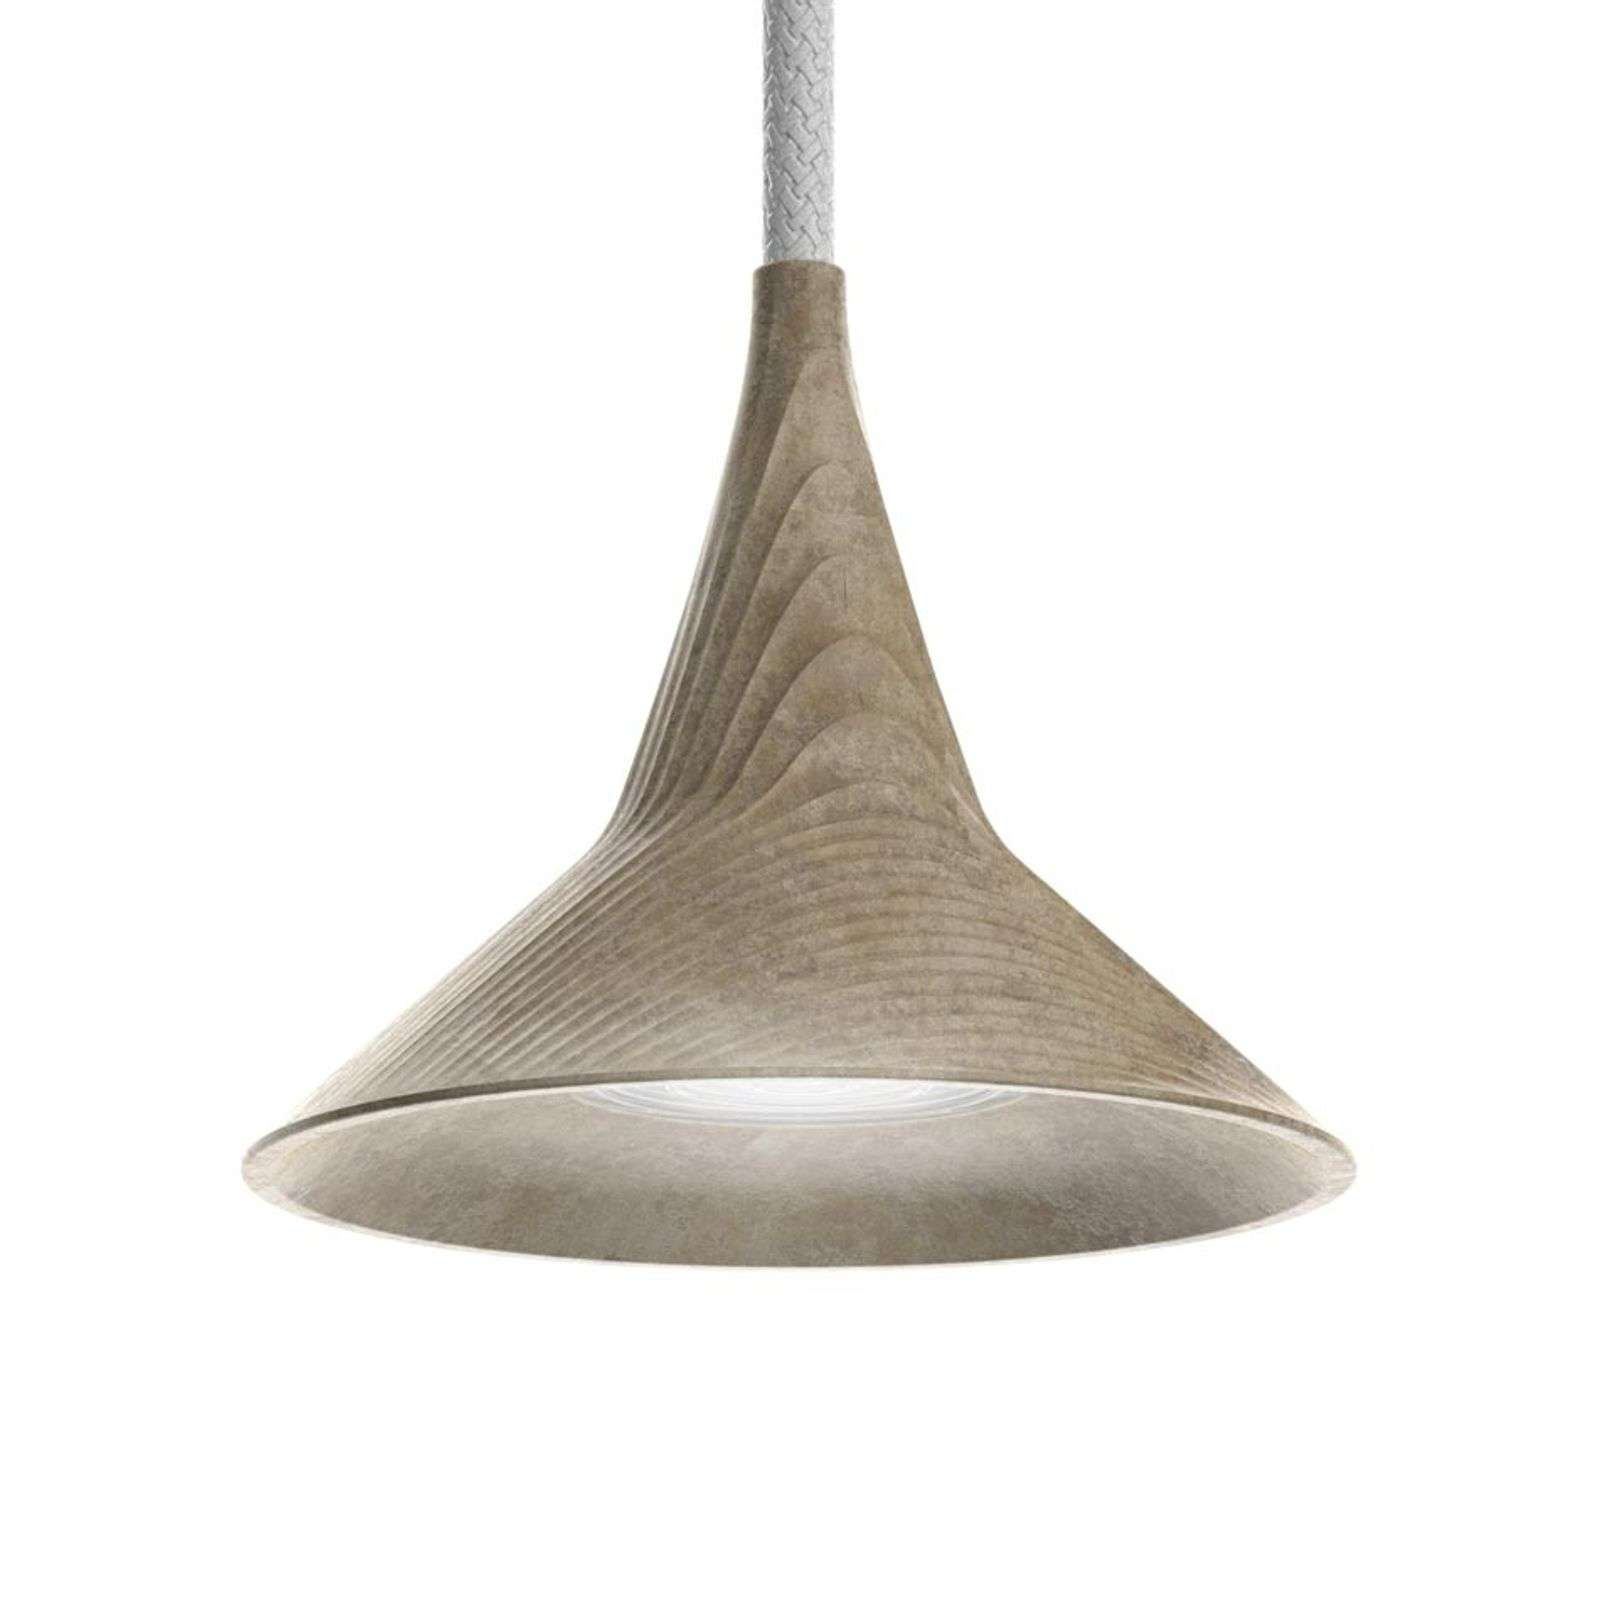 Artemide Unterlinden hanglamp messing 3.000 K